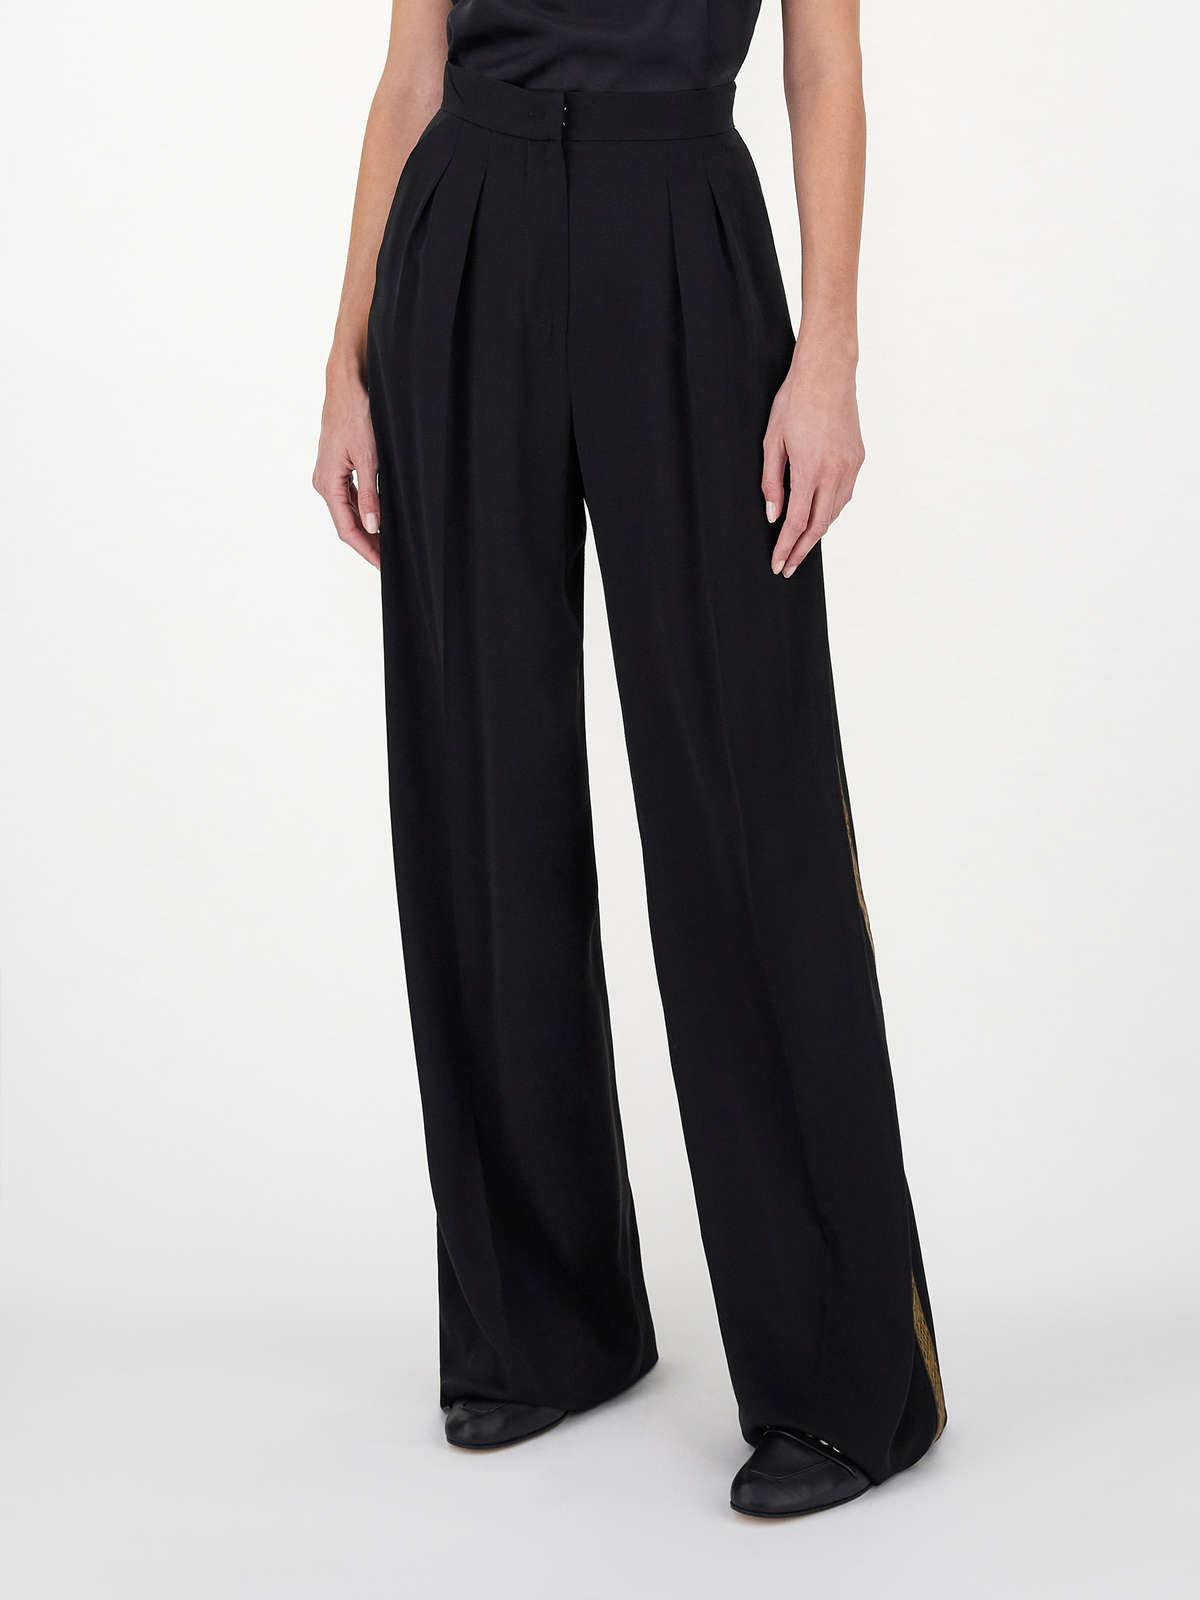 Womens Max Mara Trousers And Jeans   Pure Silk Charmeuse Trousers Black